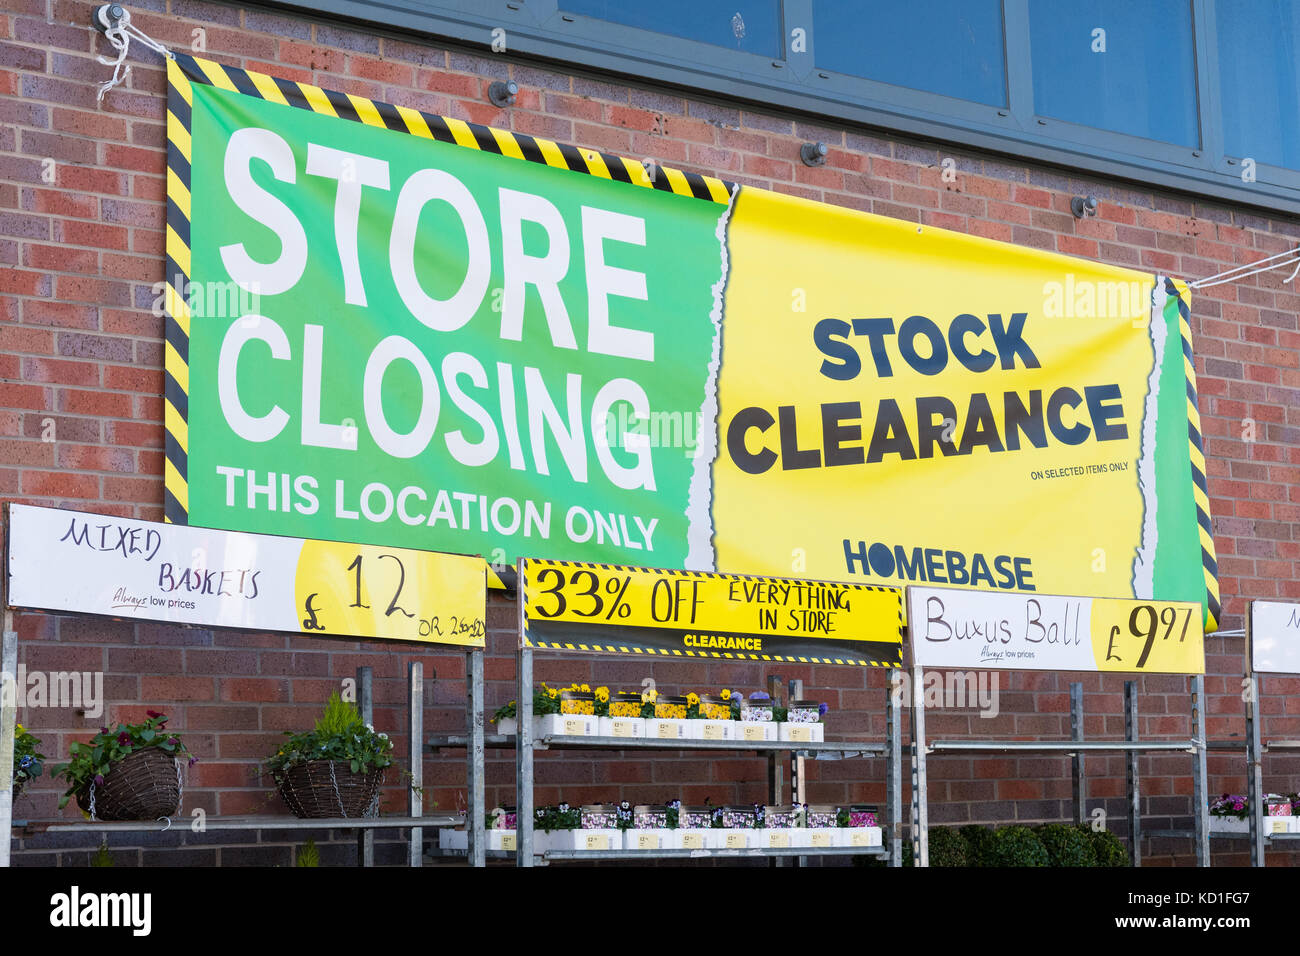 Homebase store closing down sale sign, Milngavie, Scotland, UK - Stock Image